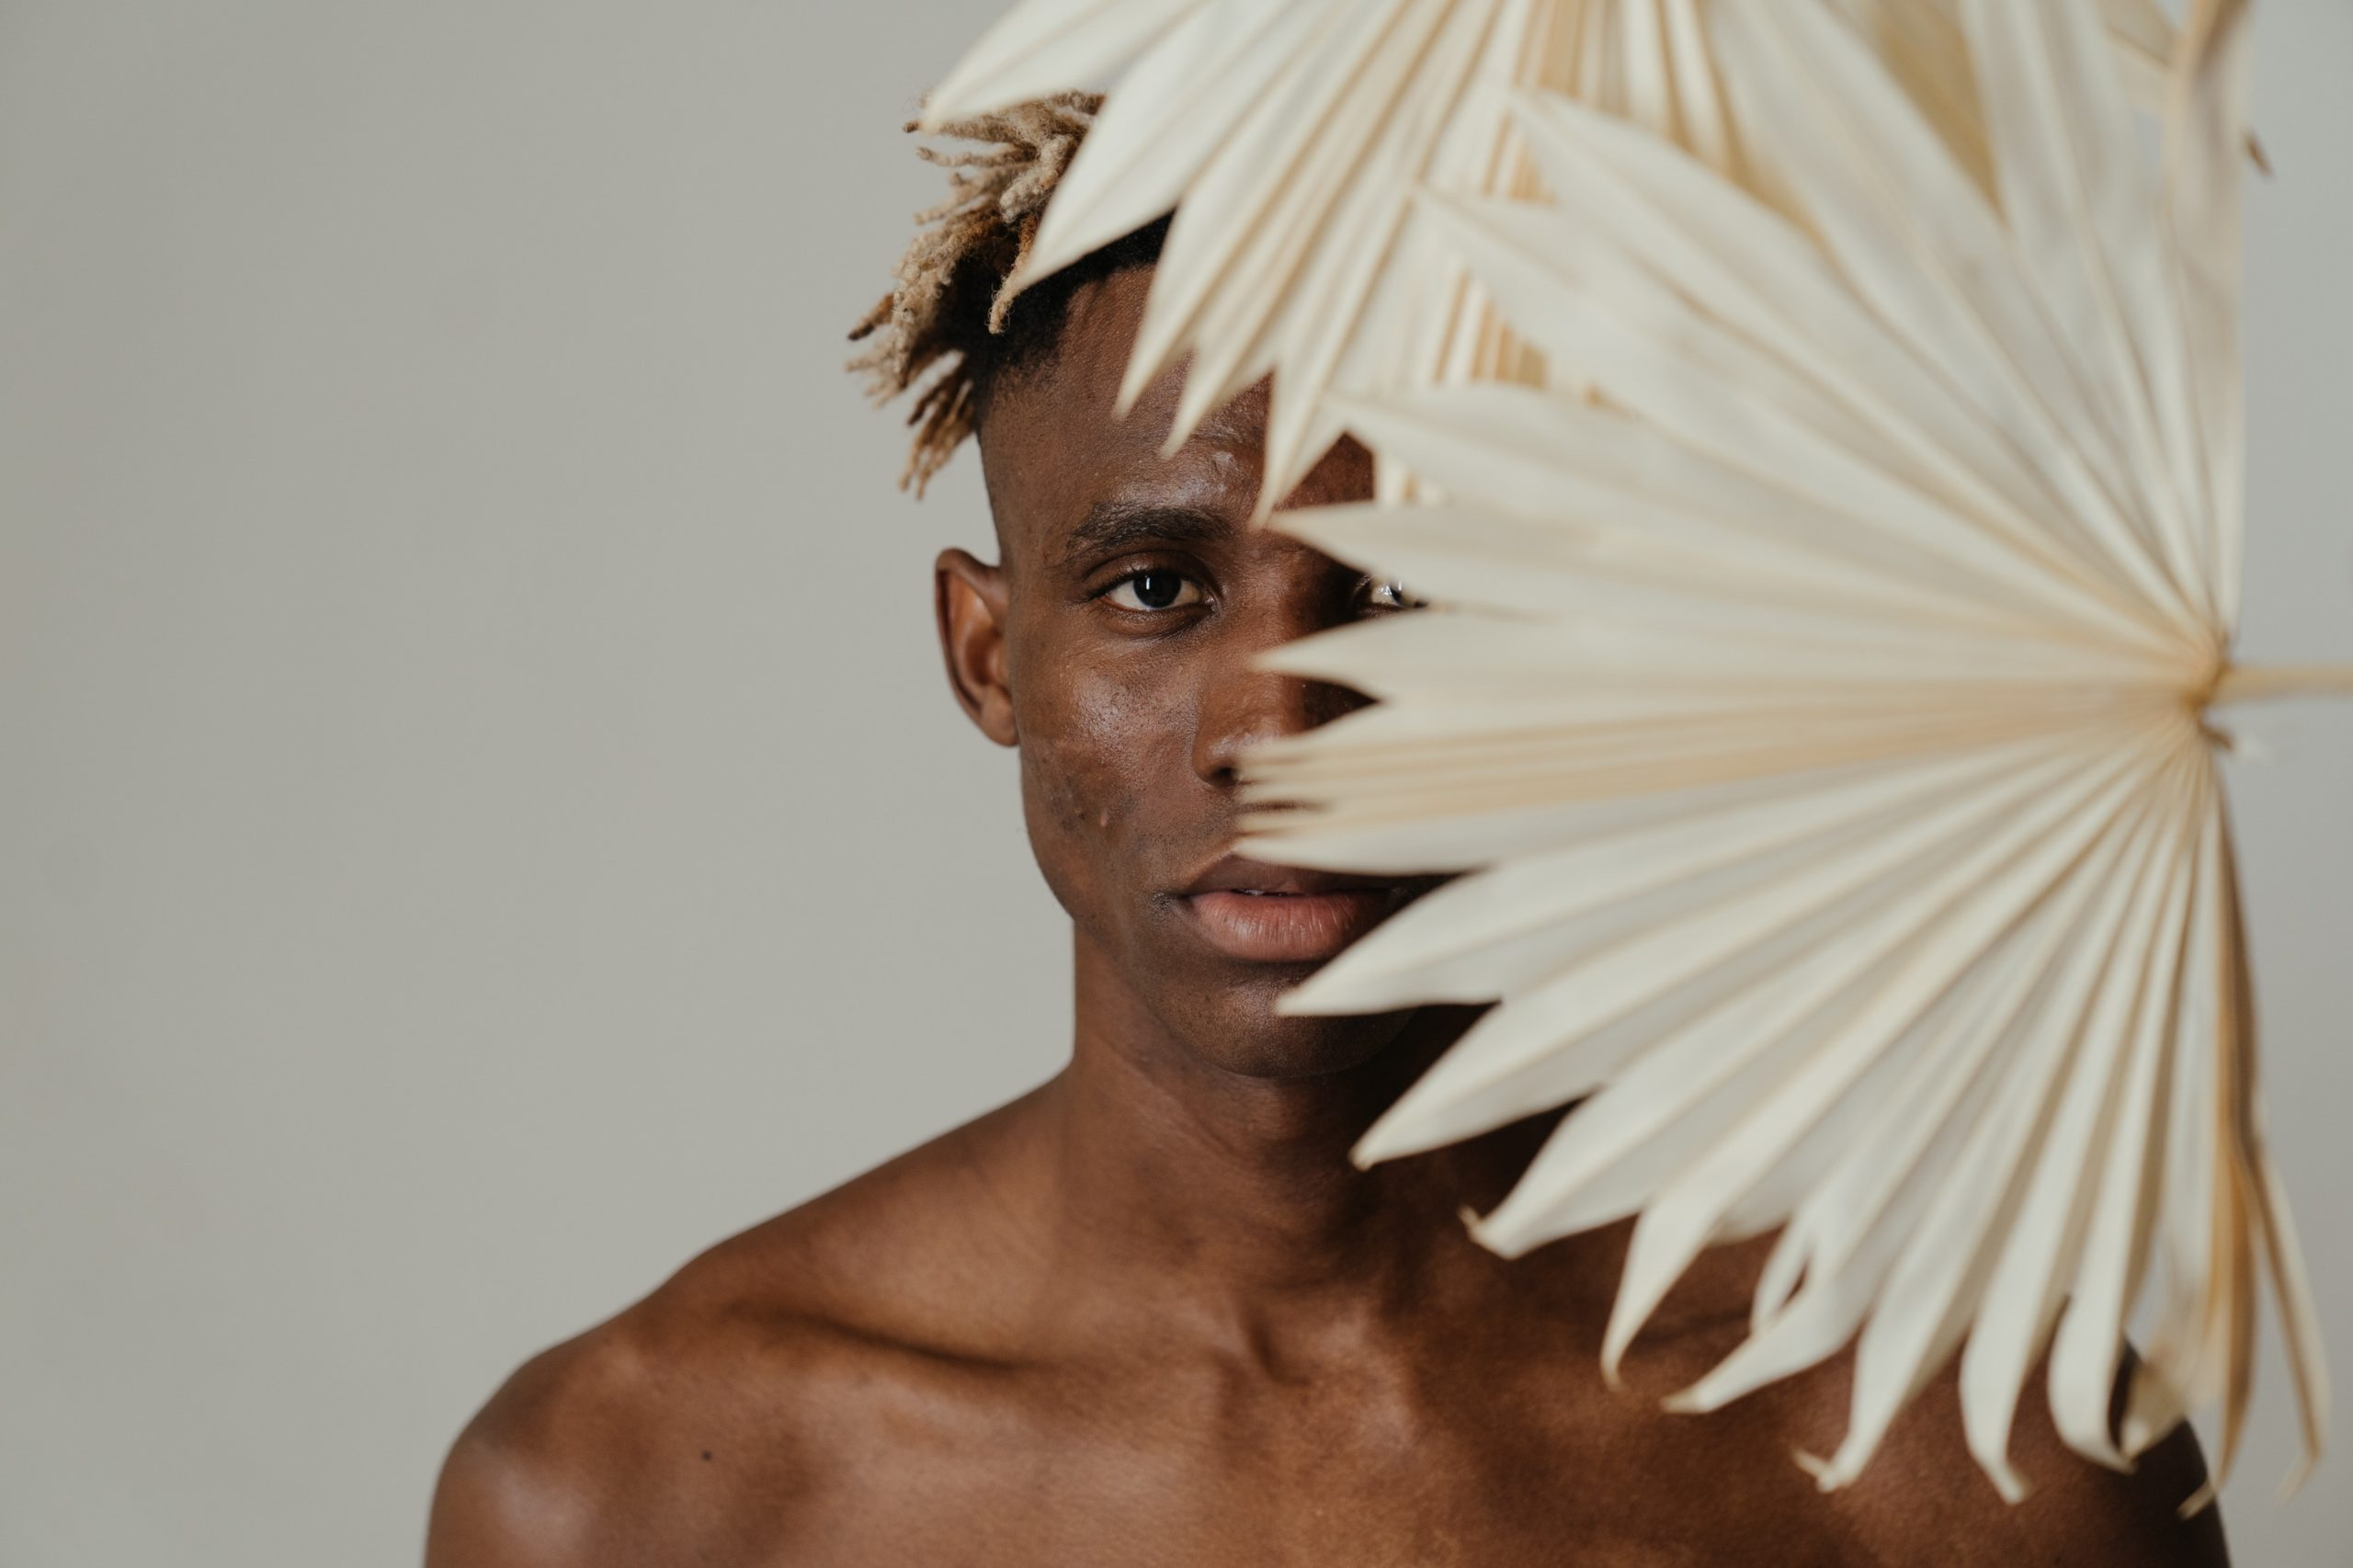 A man with acne holding a white palm frond in front of his face